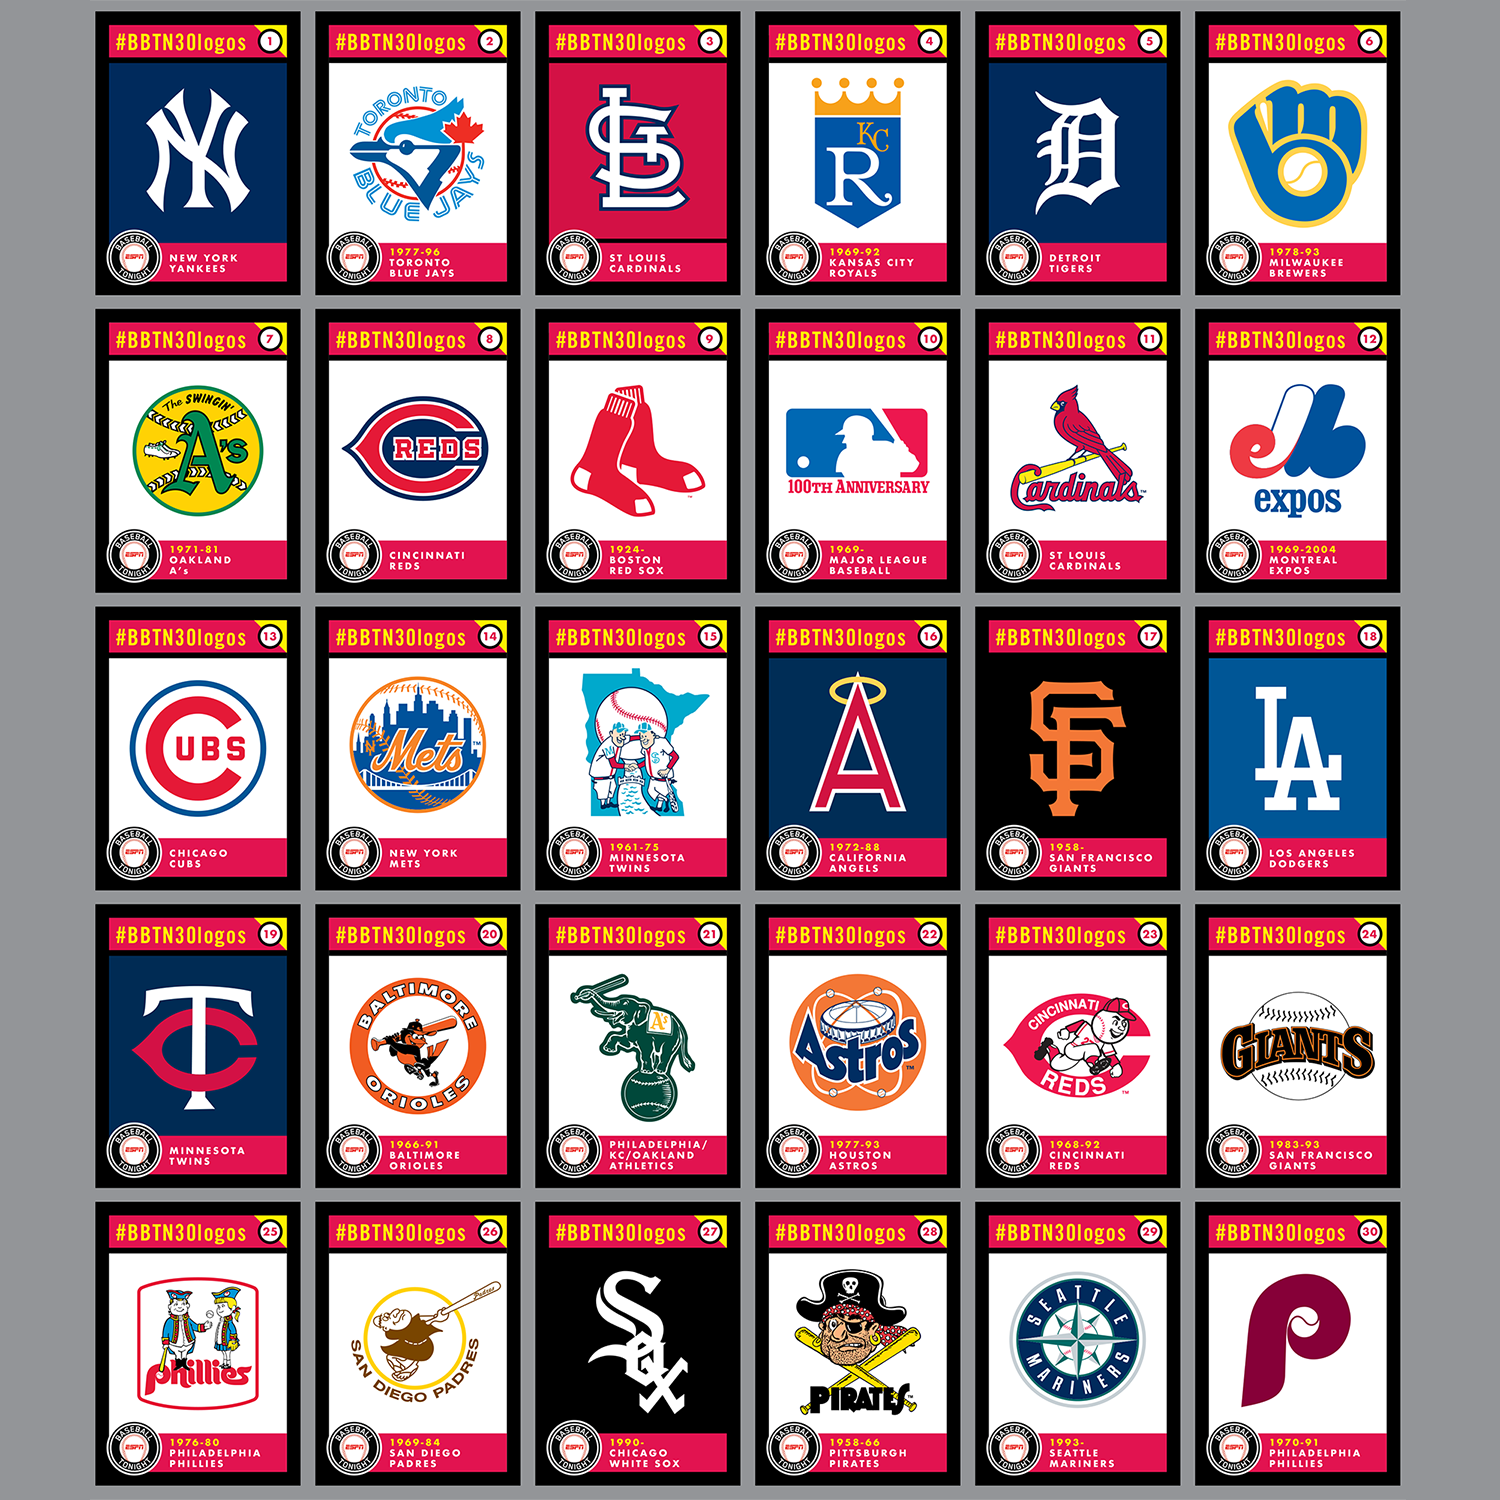 Espn Baseball Tonight Podcast S Top 30 All Time Mlb Logos Espn Baseball Sports Logo Design Mlb Logos